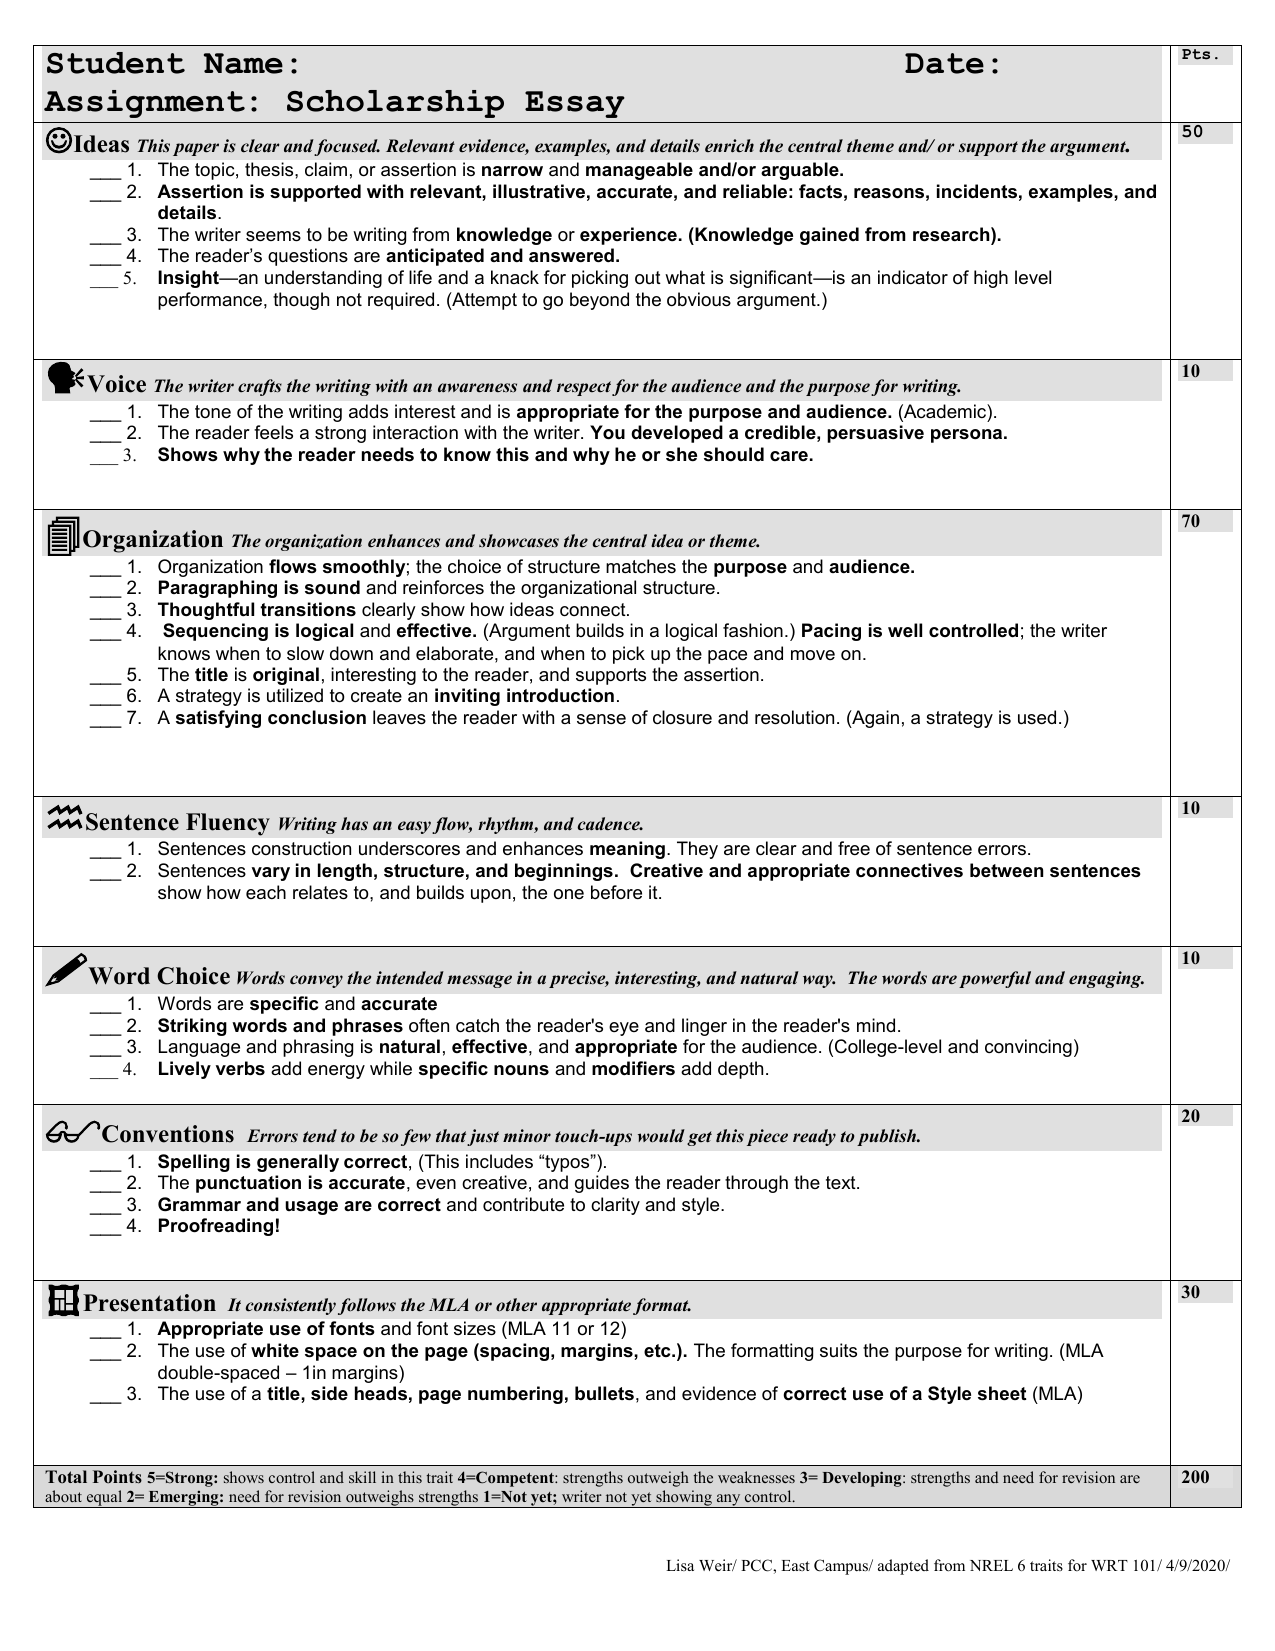 Expository essay writing graphic organizer